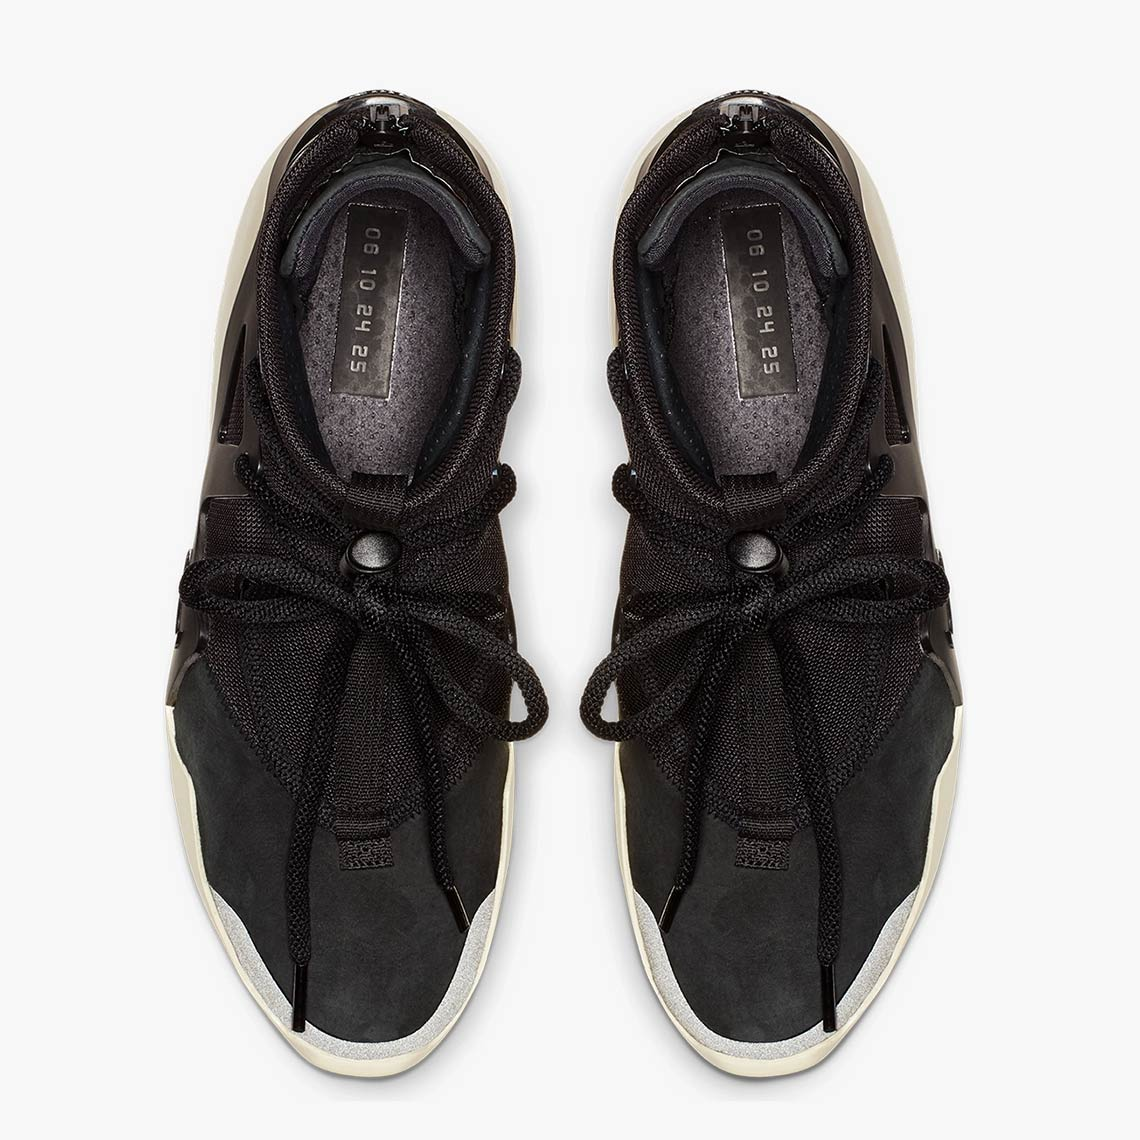 1dc95bfbc15a2a Nike Air Fear Of God 1 Buying Guide + Store Links